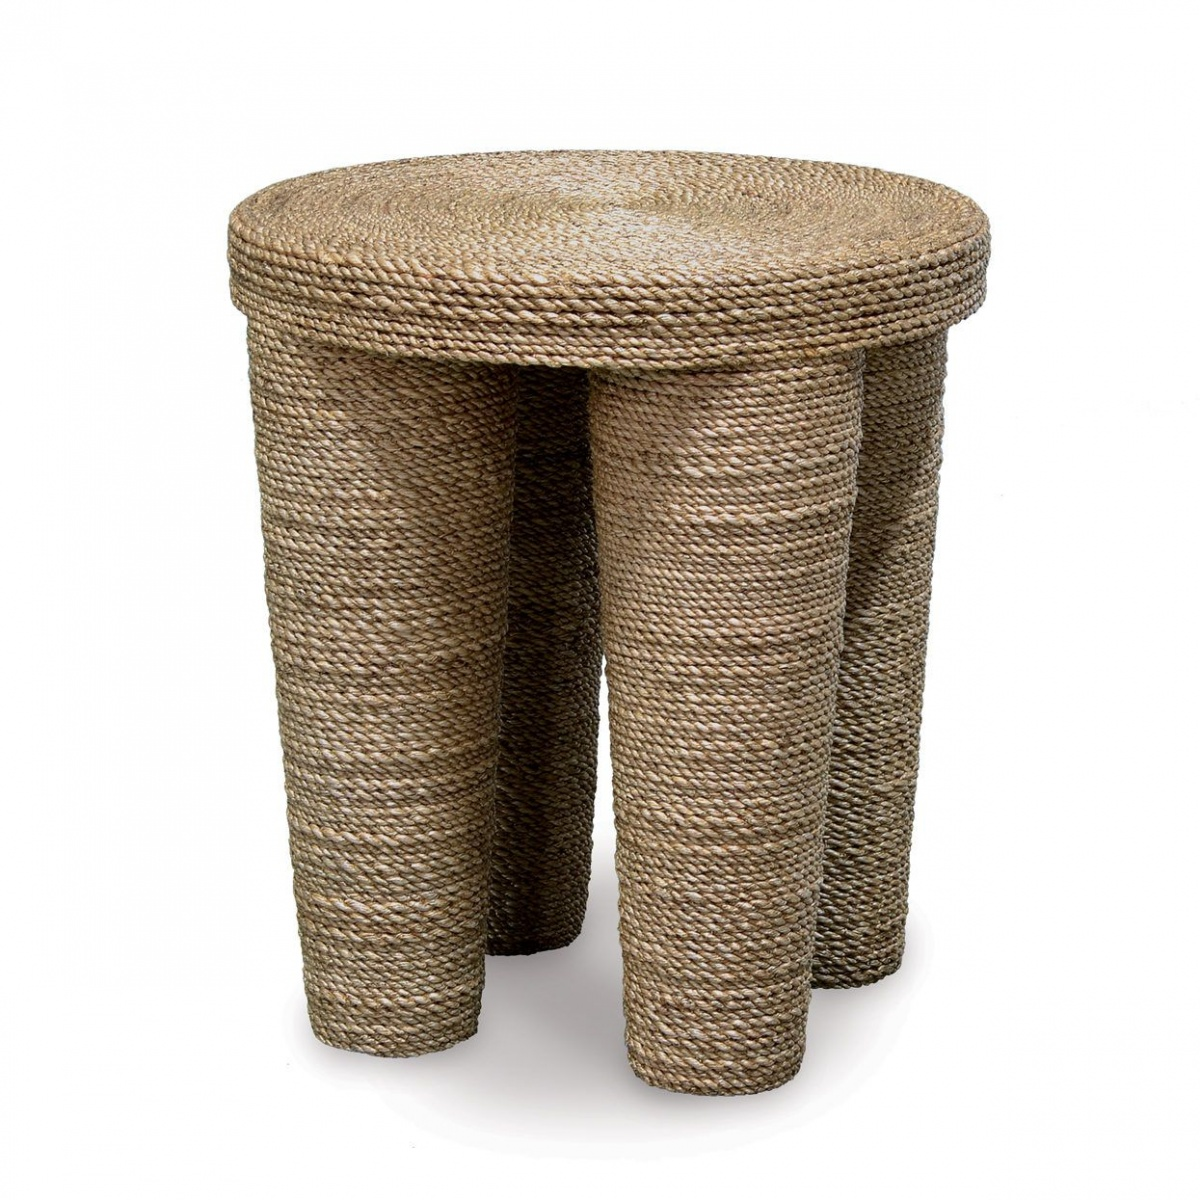 A rope-wrapped stool